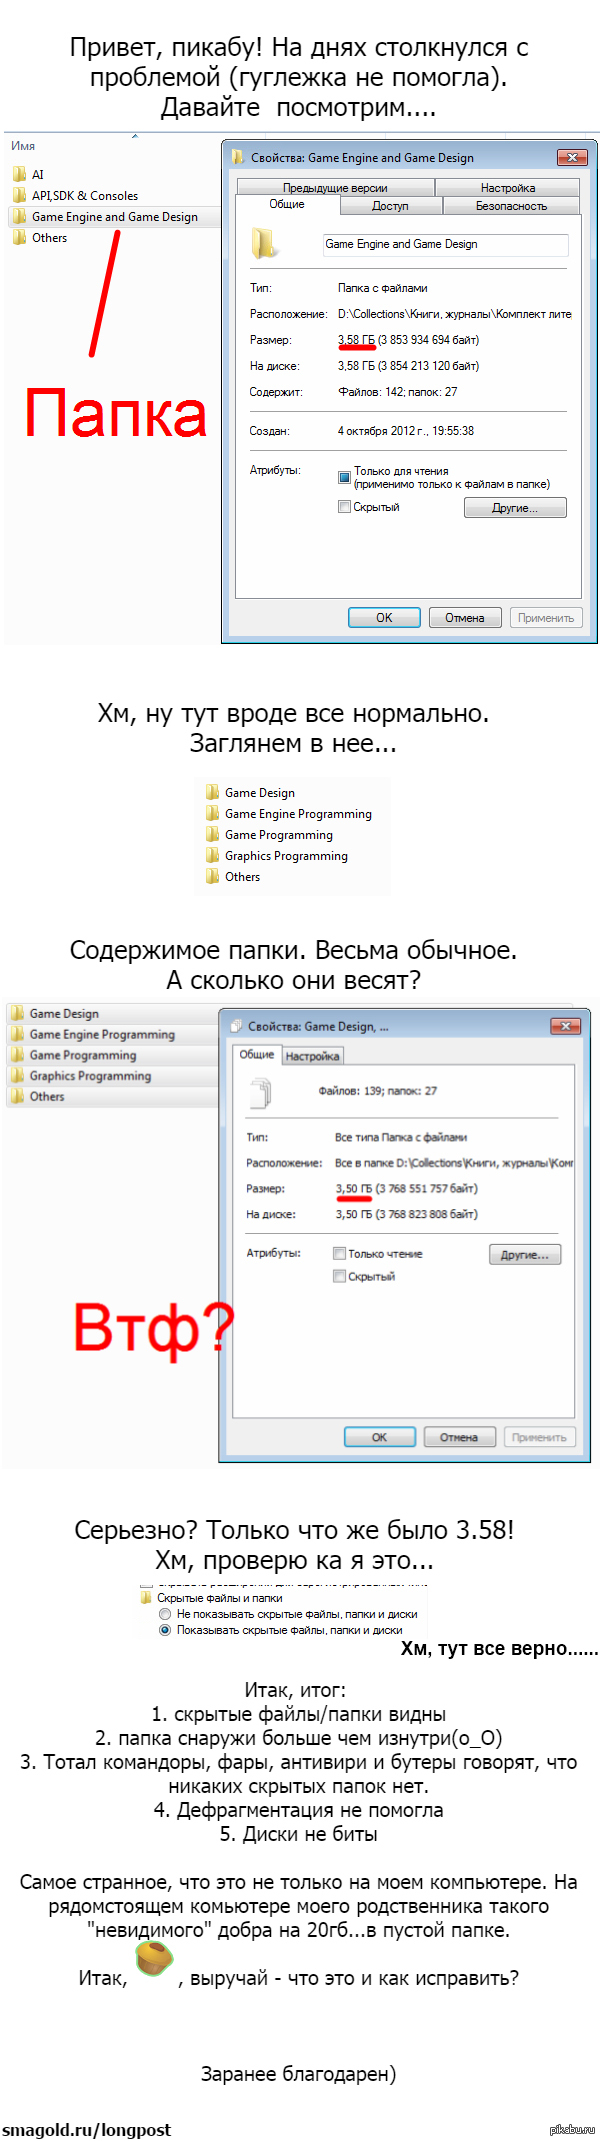 Как windows 7 сделать показ скрытых файлов и папок